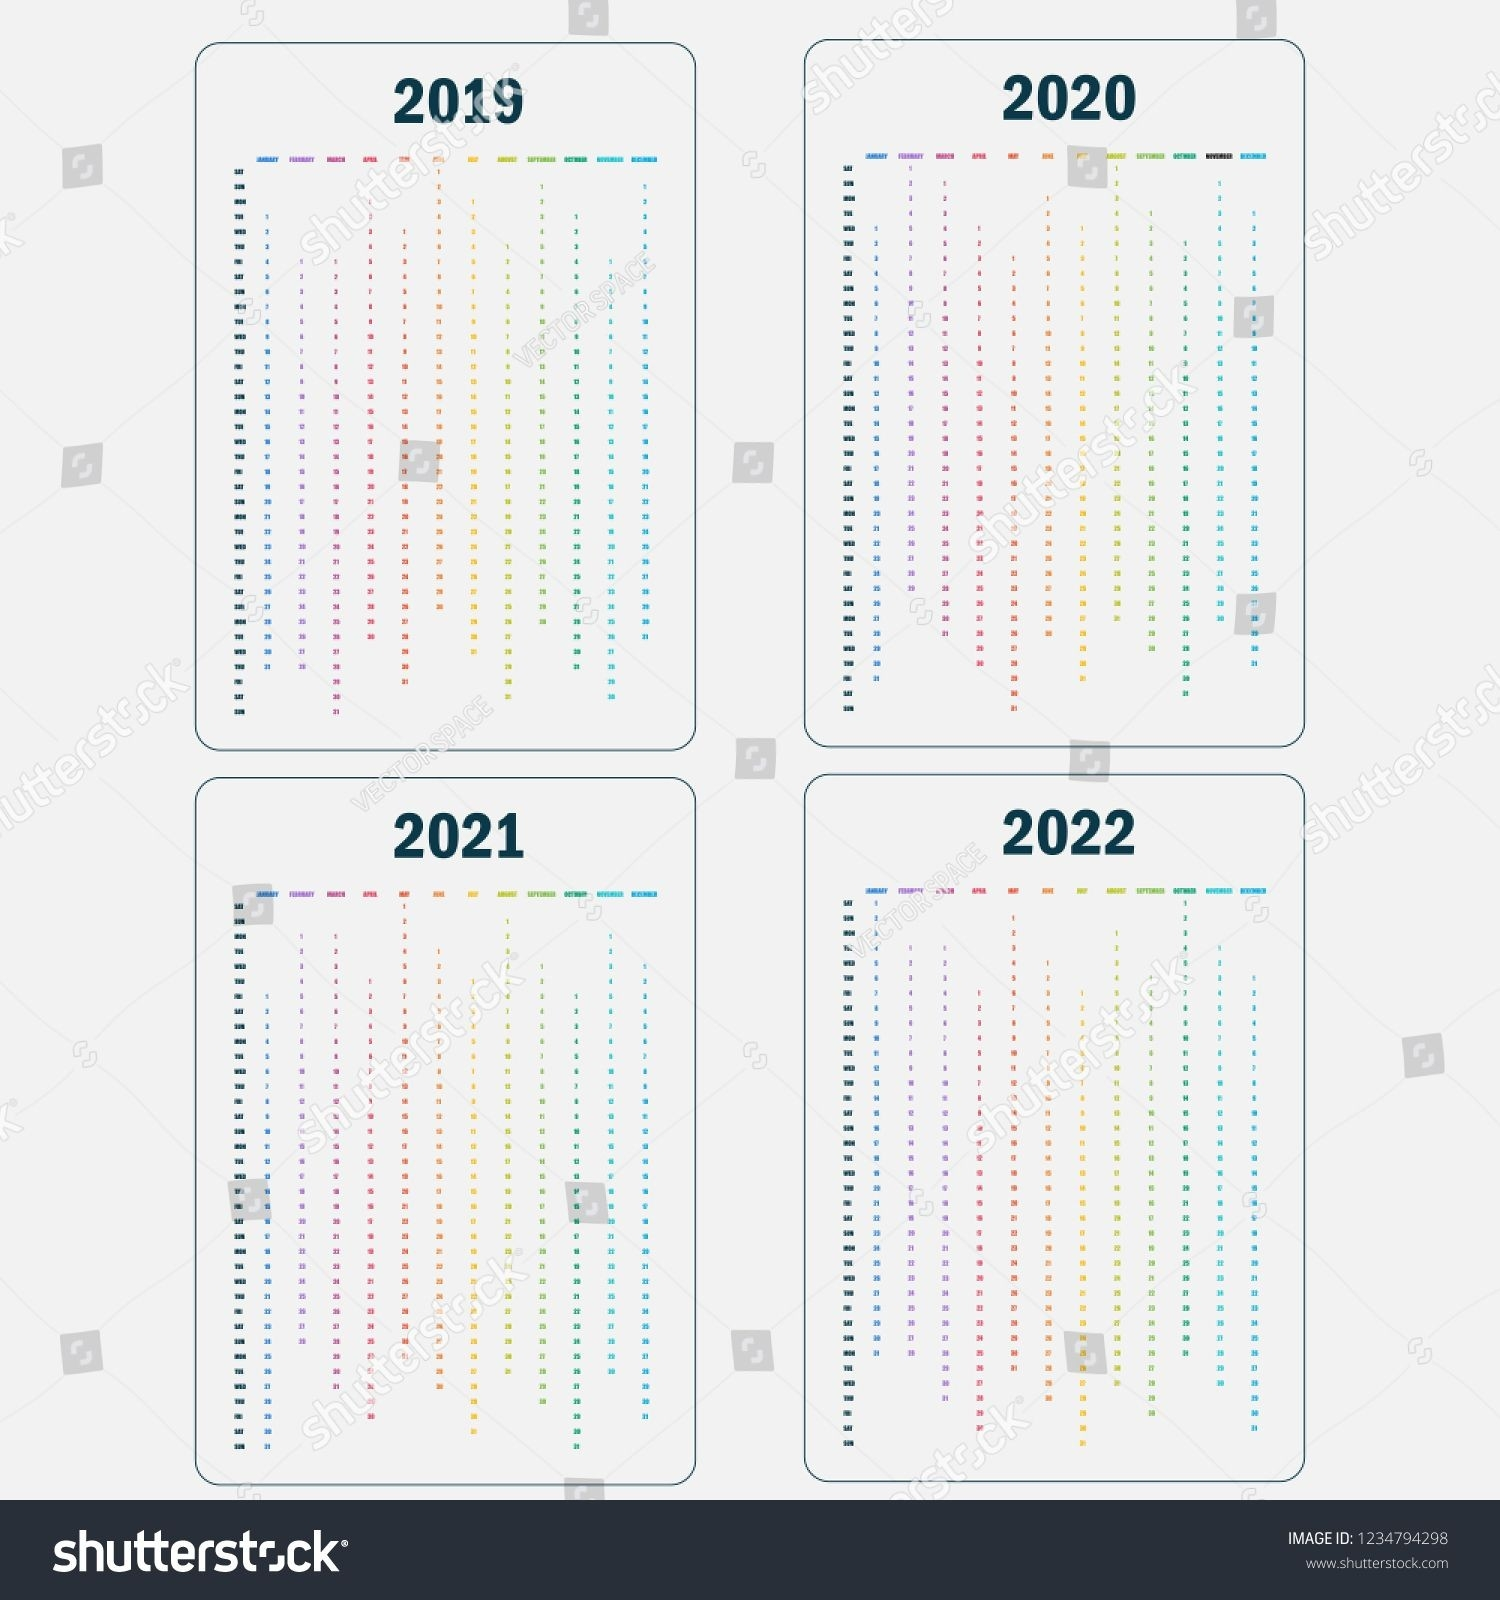 Calendar 2019, 2020, 2021 And 2022 Calendar Template-Does Indesign Have A 2020 Calendar Template